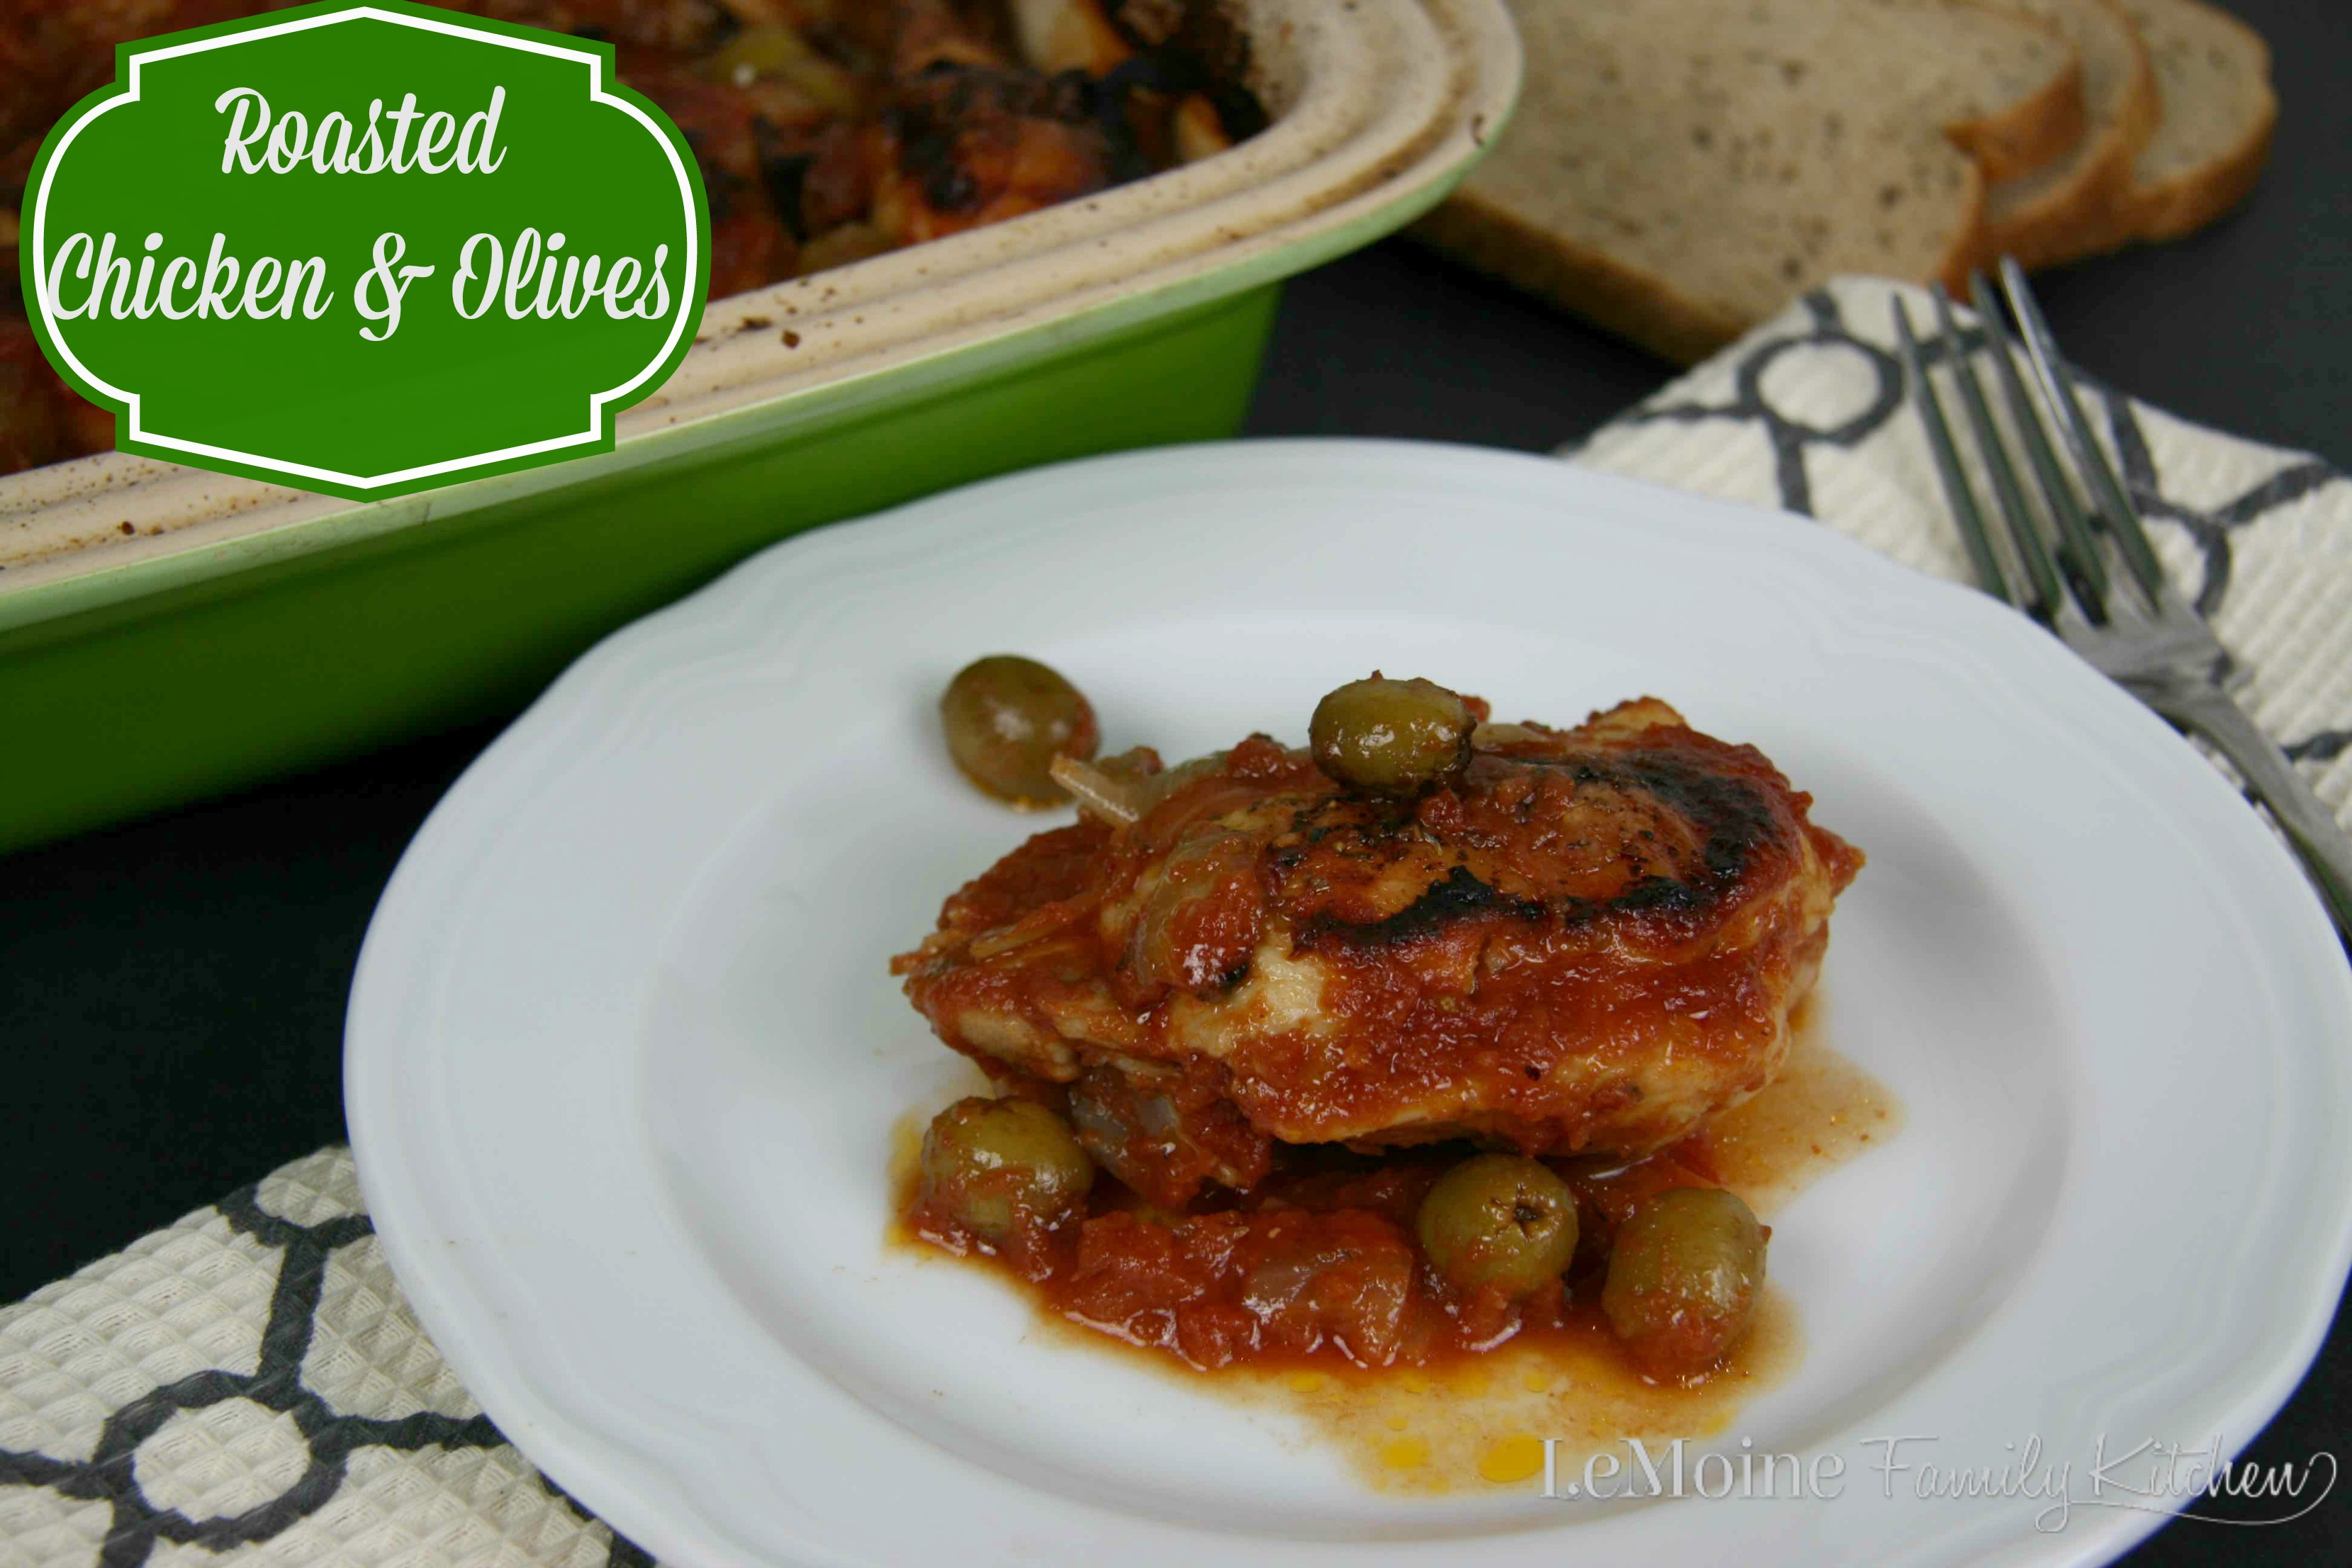 Roasted Chicken & Olives